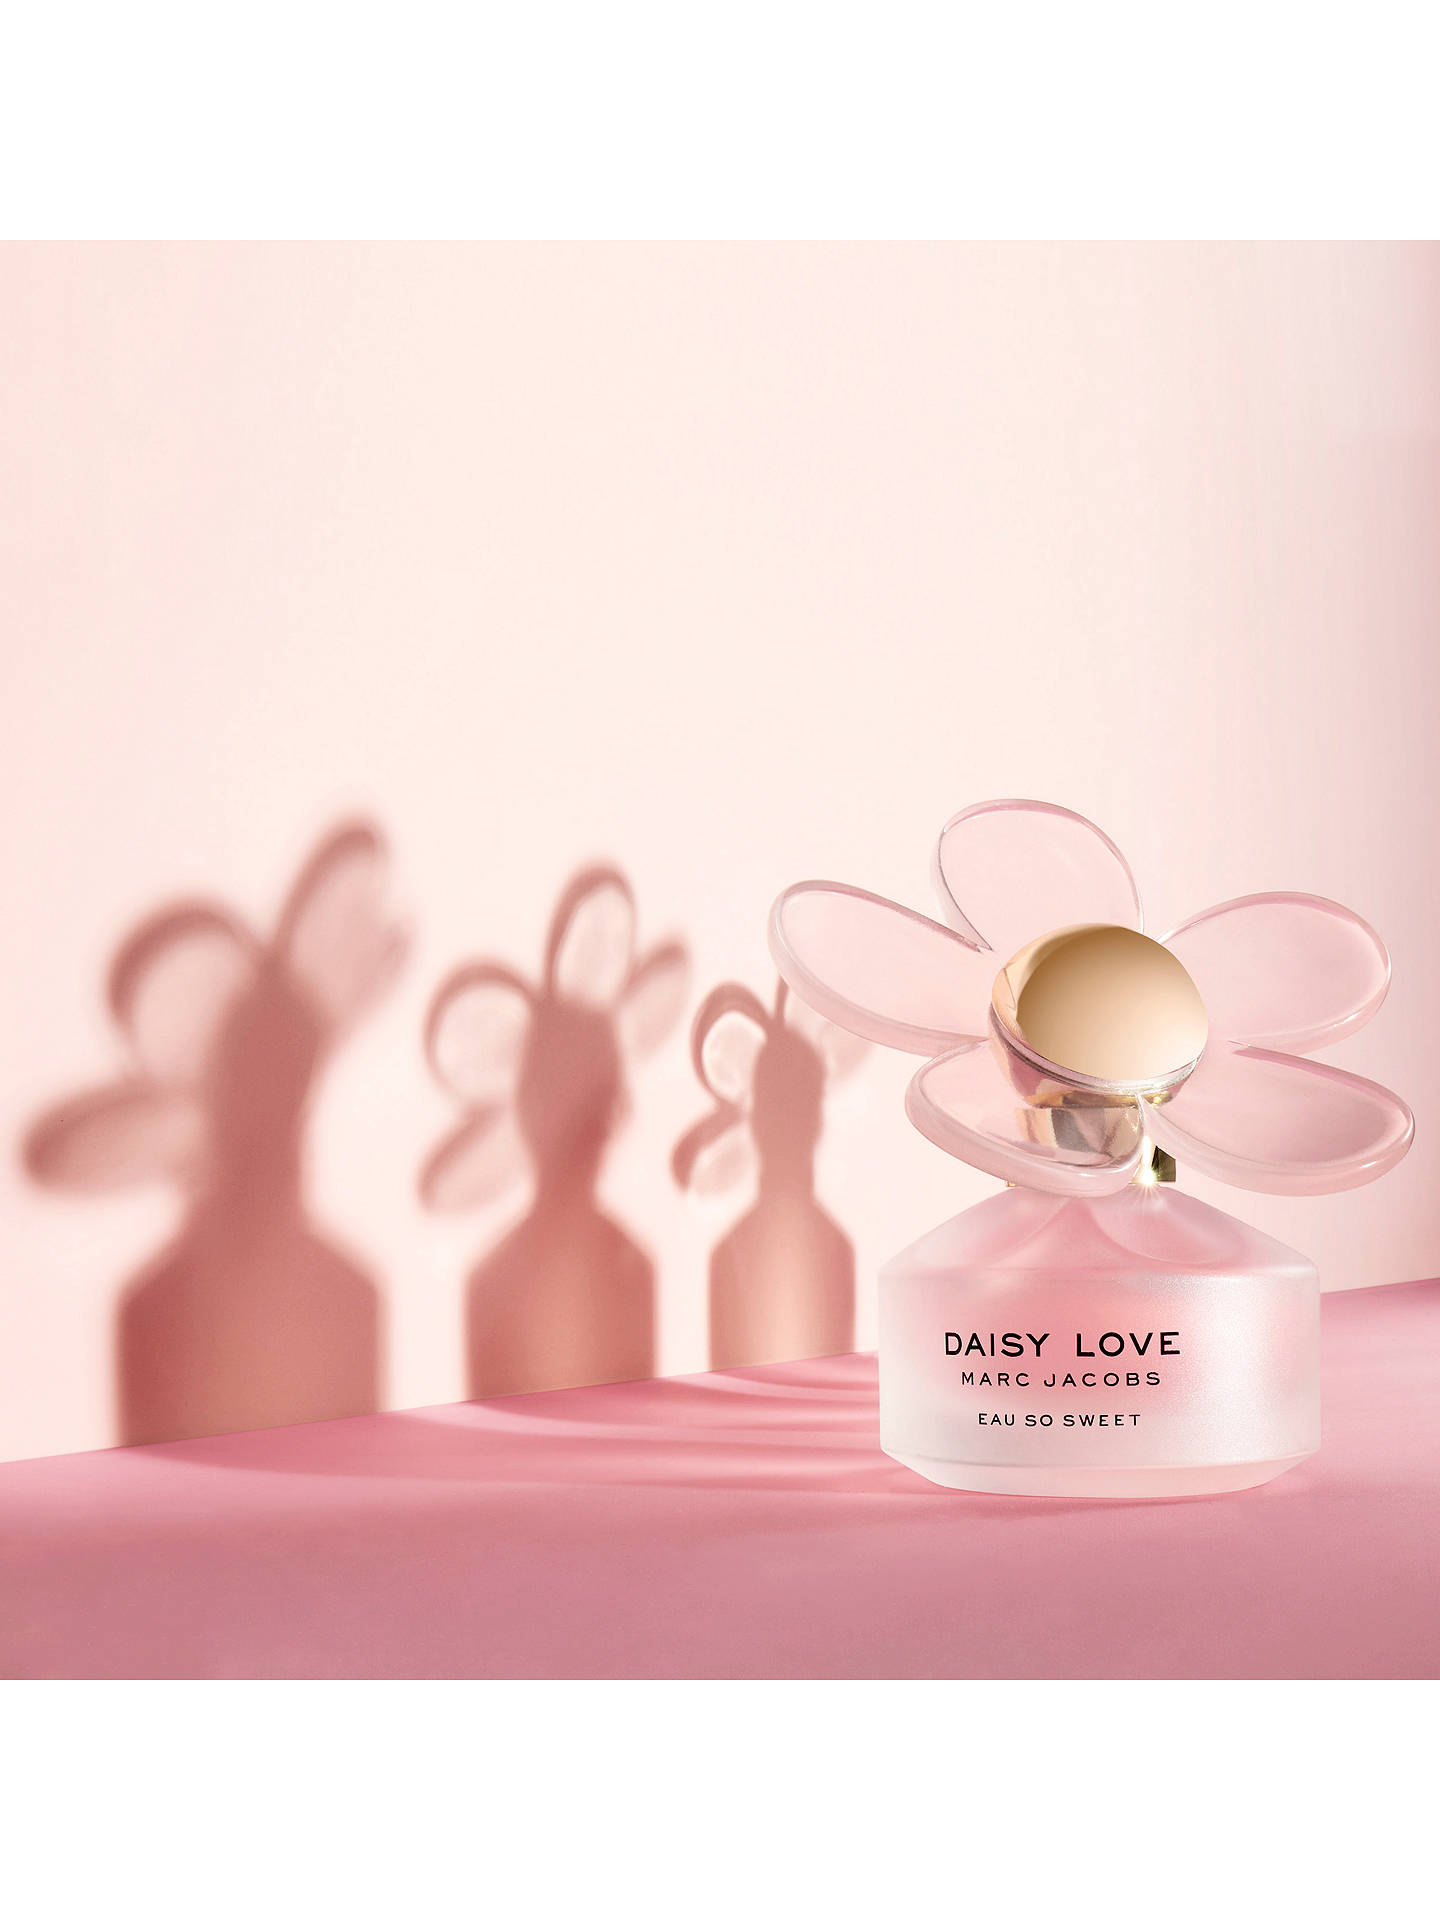 Marc Jacobs Daisy Love Eau So Sweet Eau